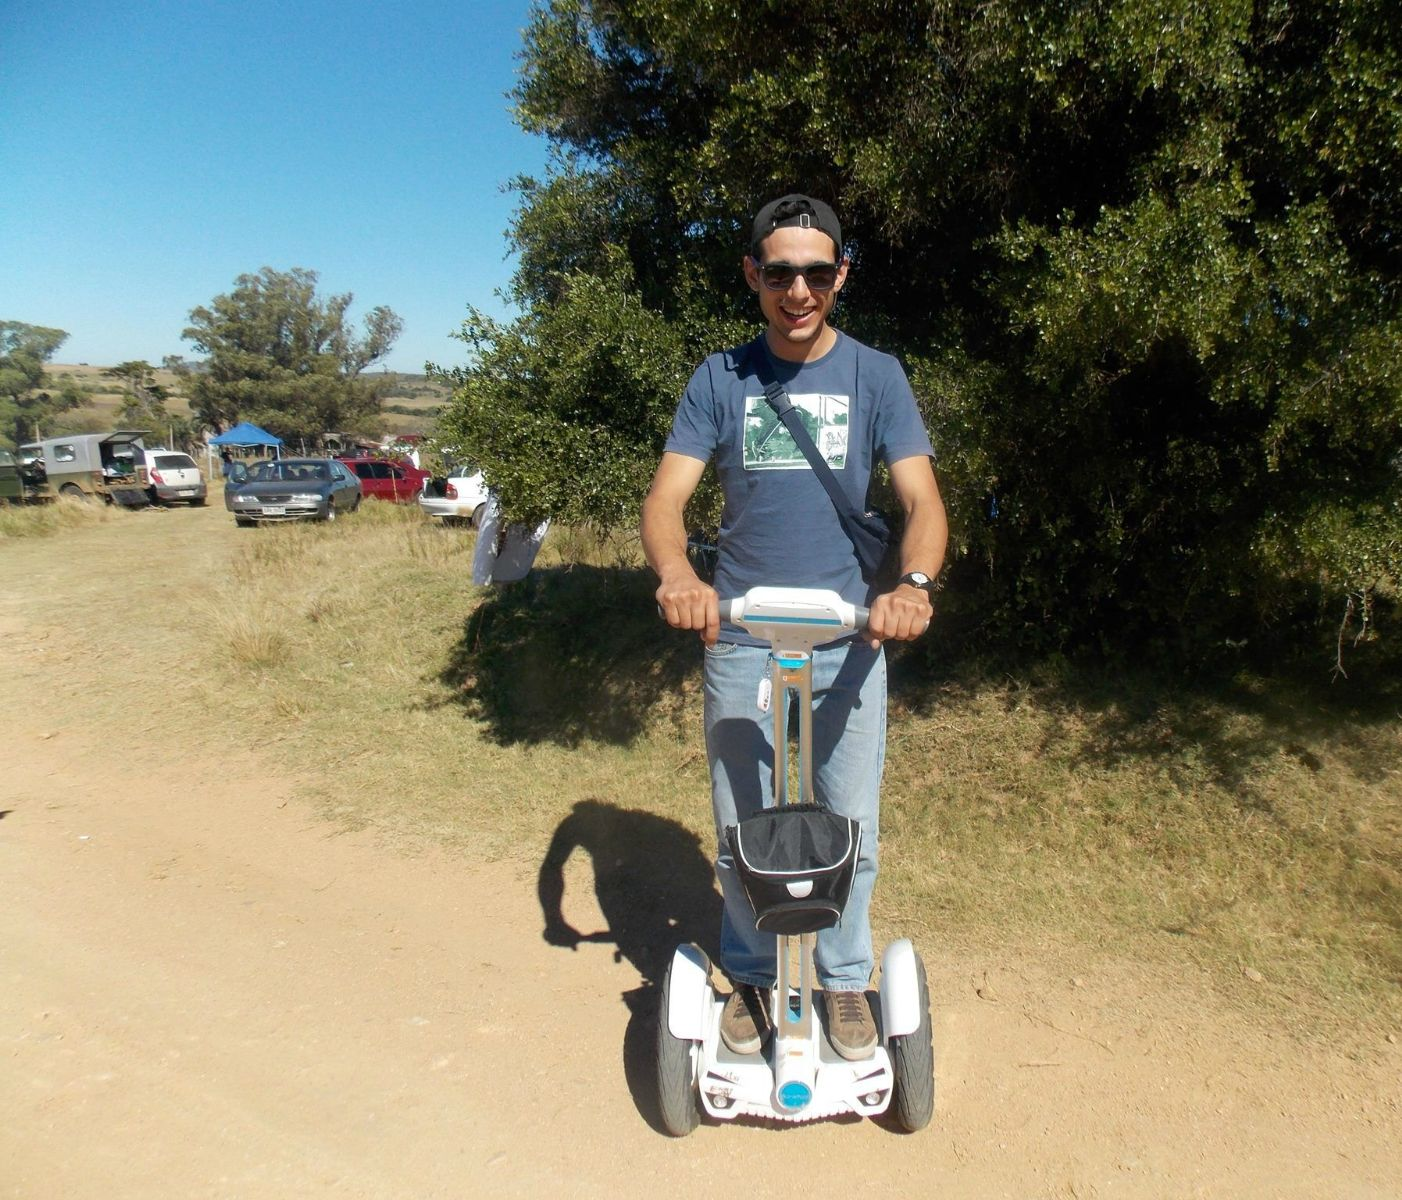 Airwheel Electric Unicycle Represent its Master of Hi-tech.